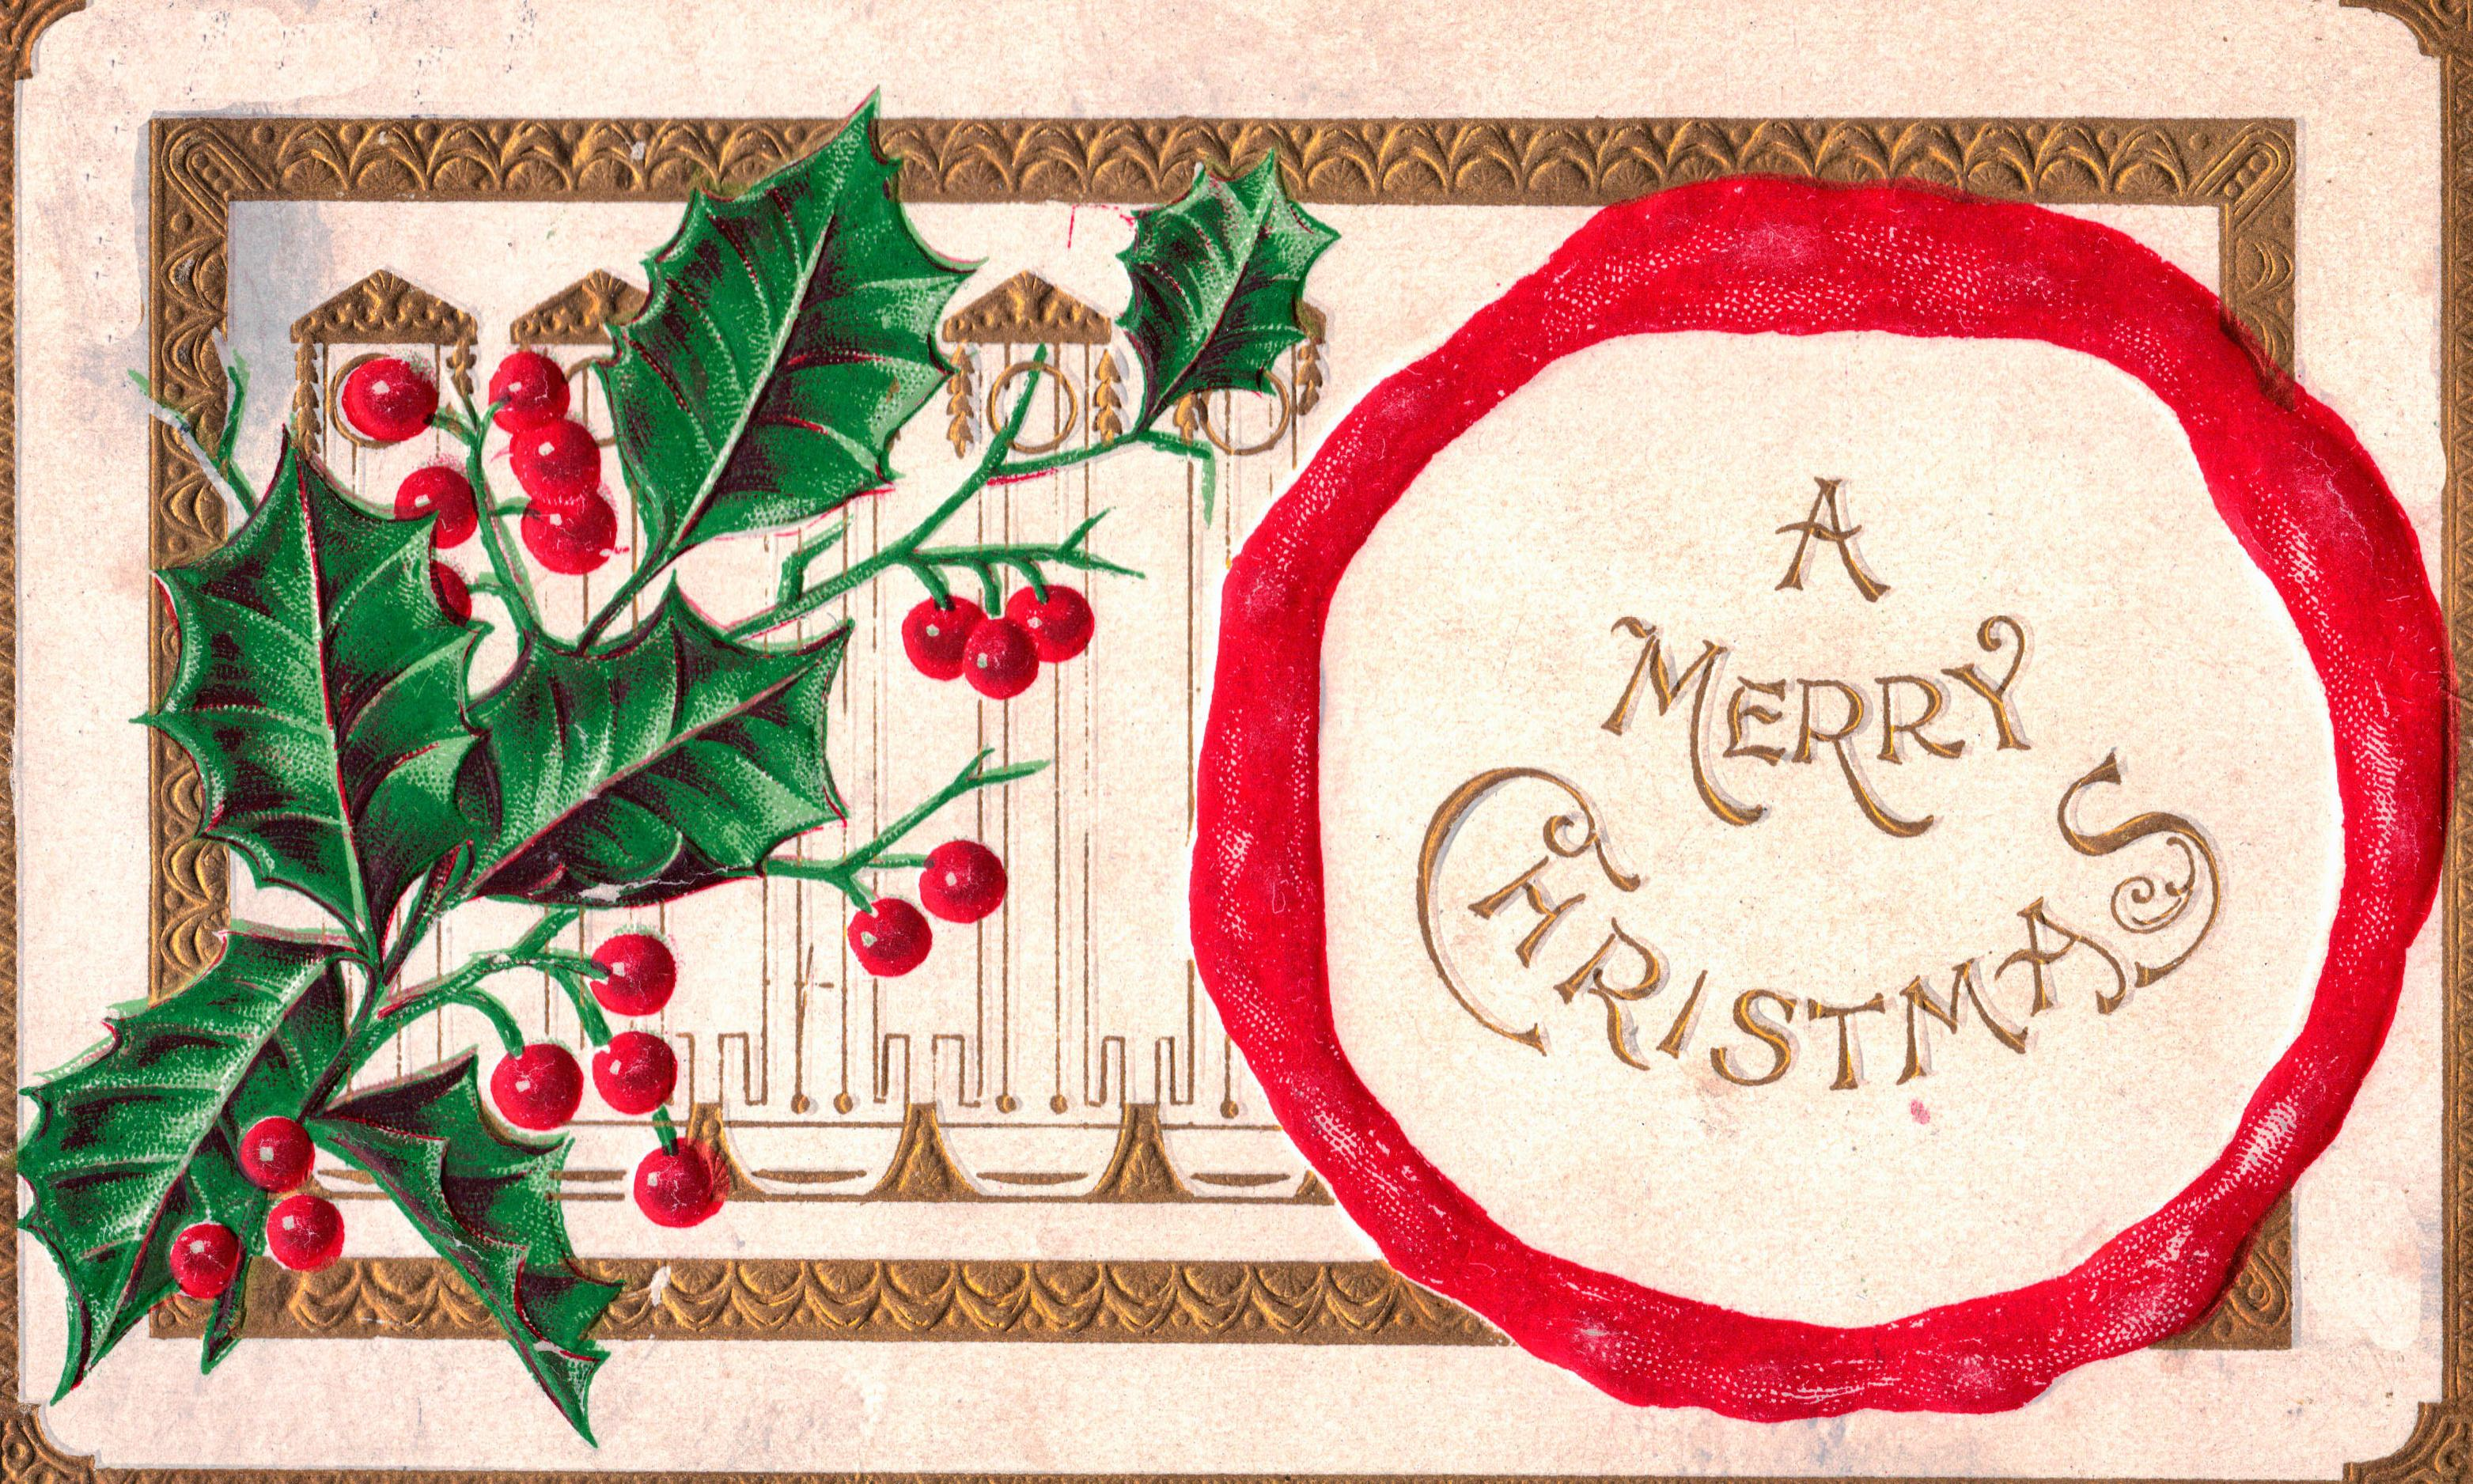 Packing Christmas cards knocked the pseudo-intellectual snob out of me